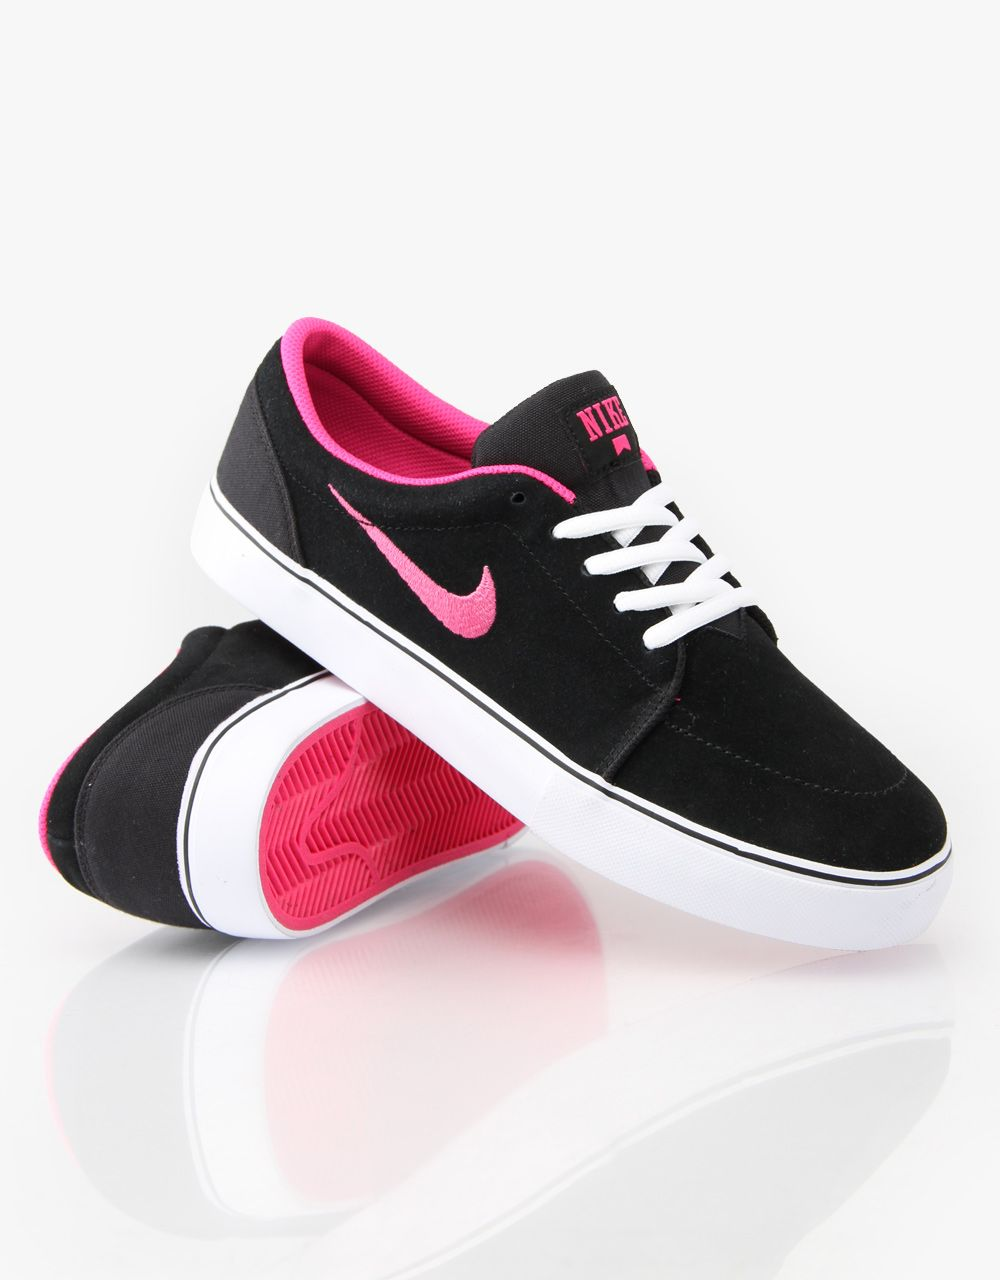 Wishlist - Nike SB Satire Skate Shoes (In Black, White, and Pink)